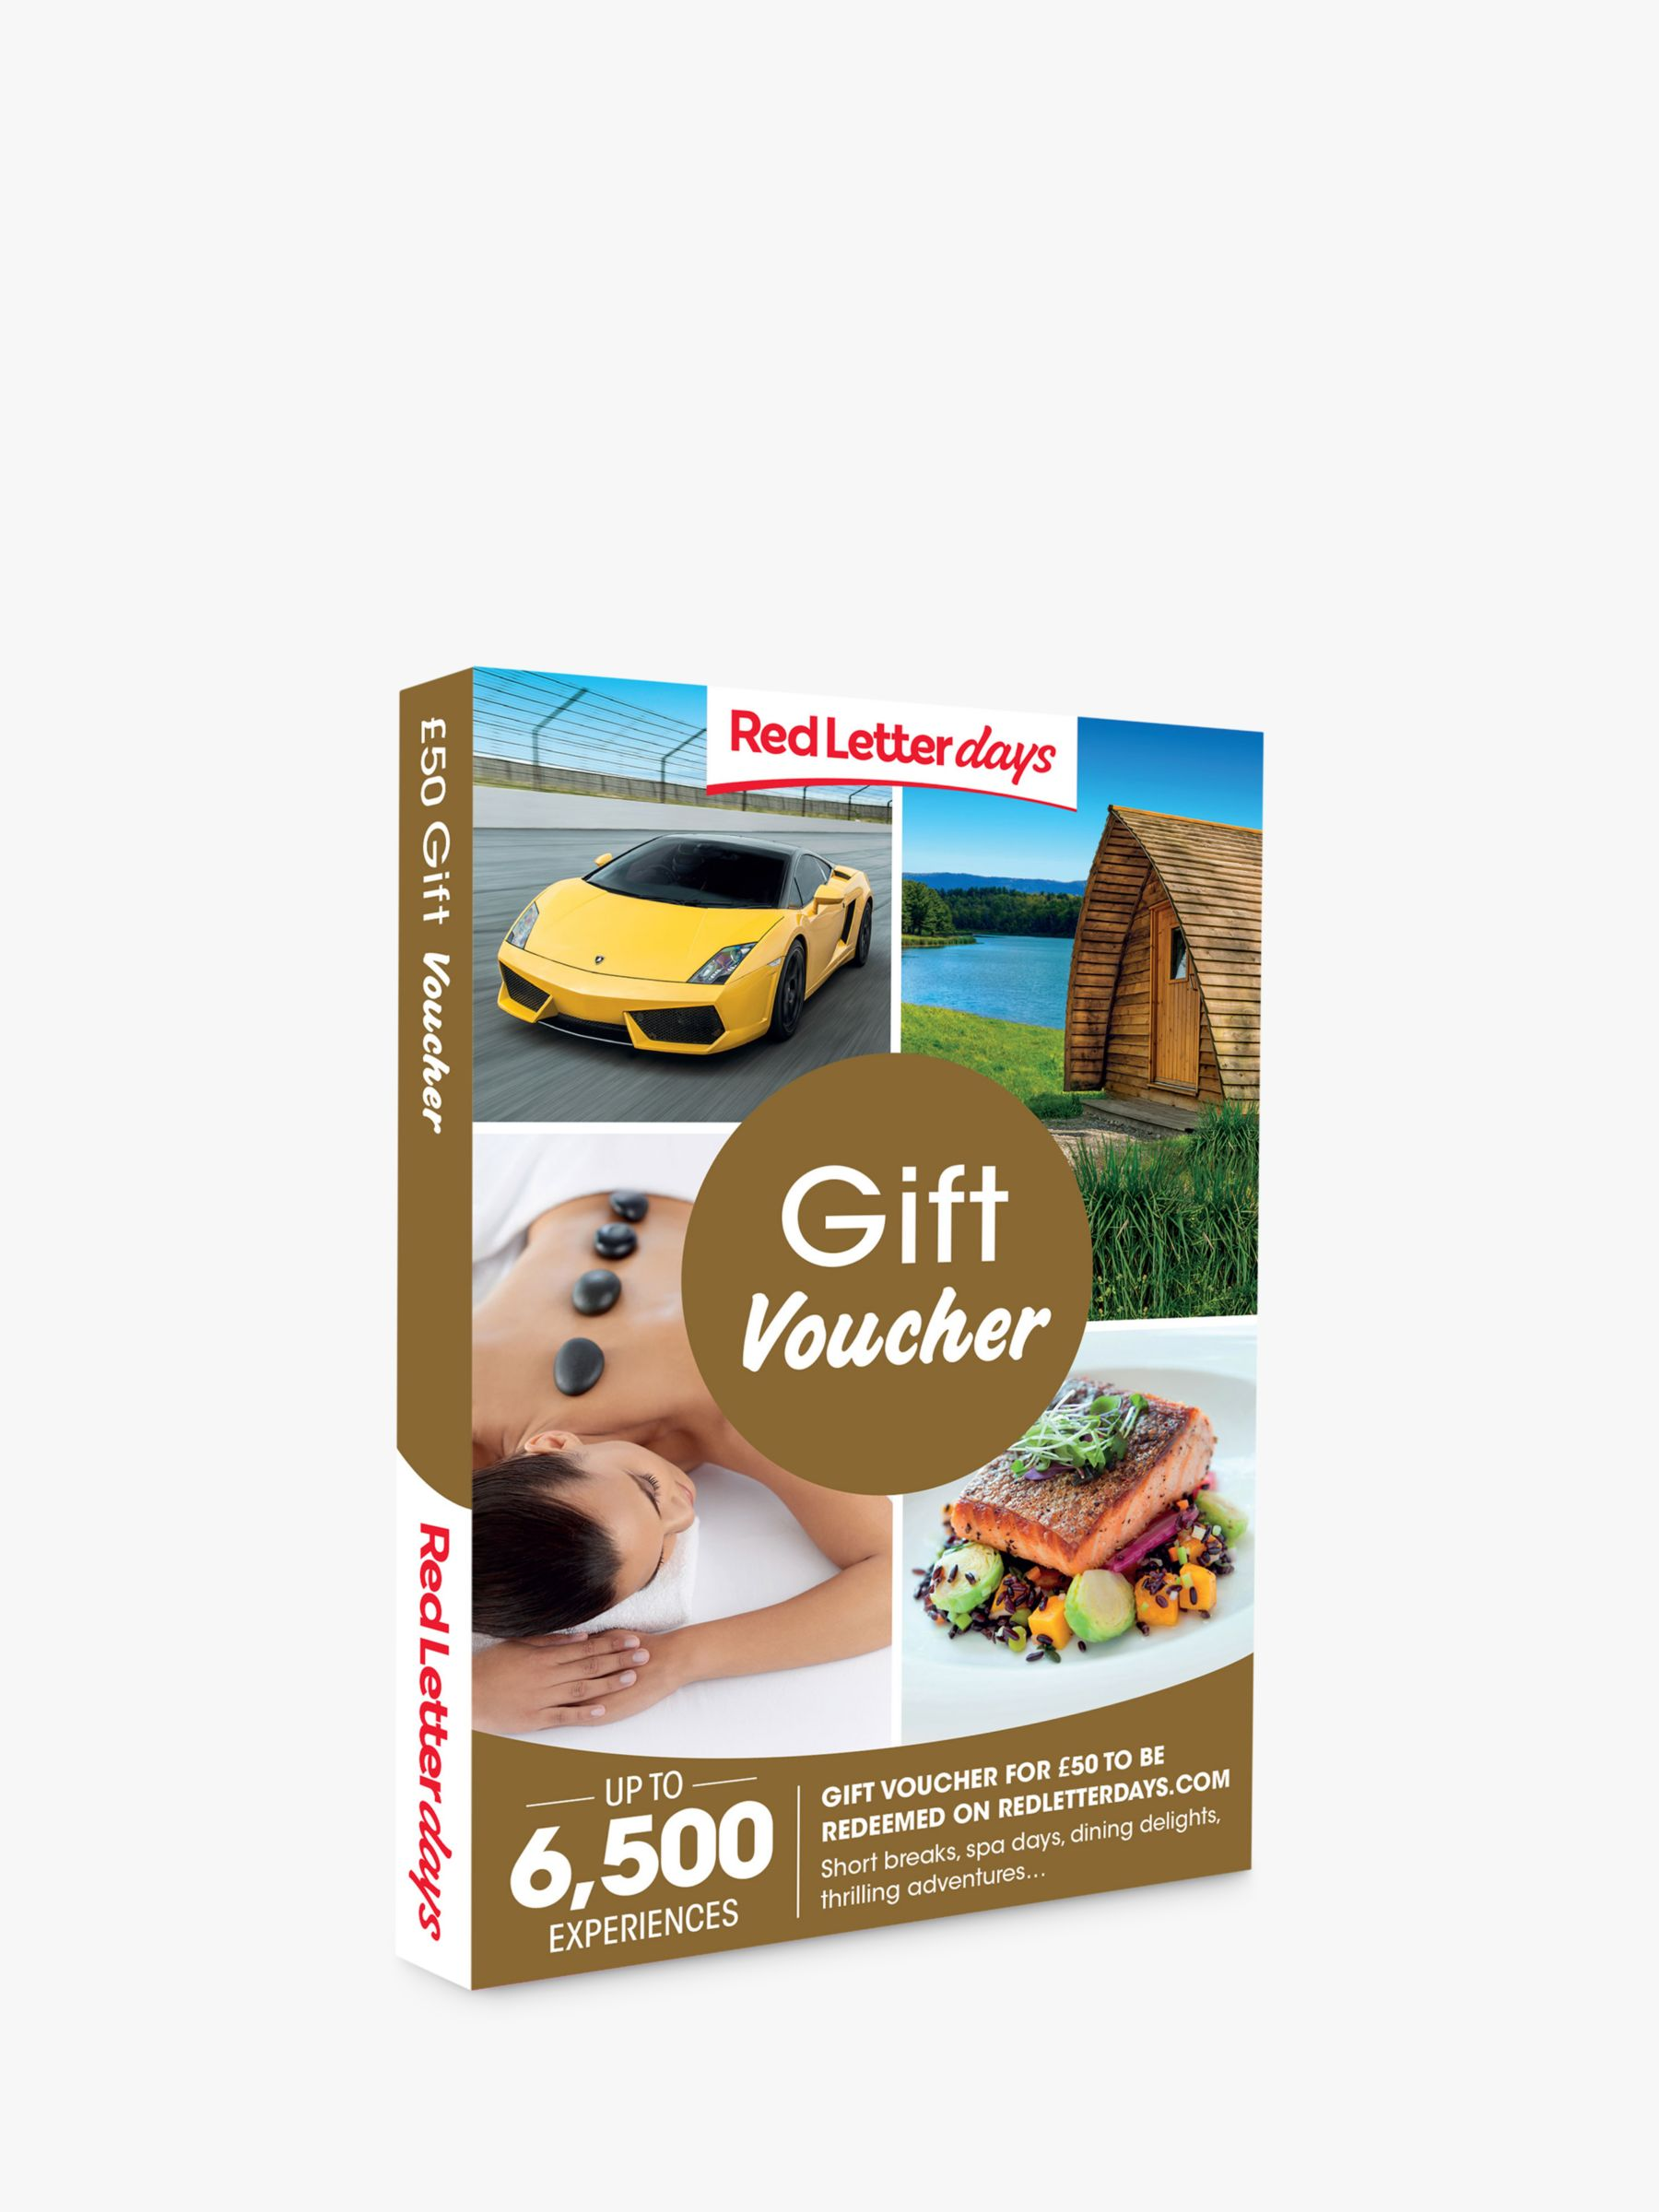 Red Letter Days Red Letter Days £50 Gift Experience Voucher